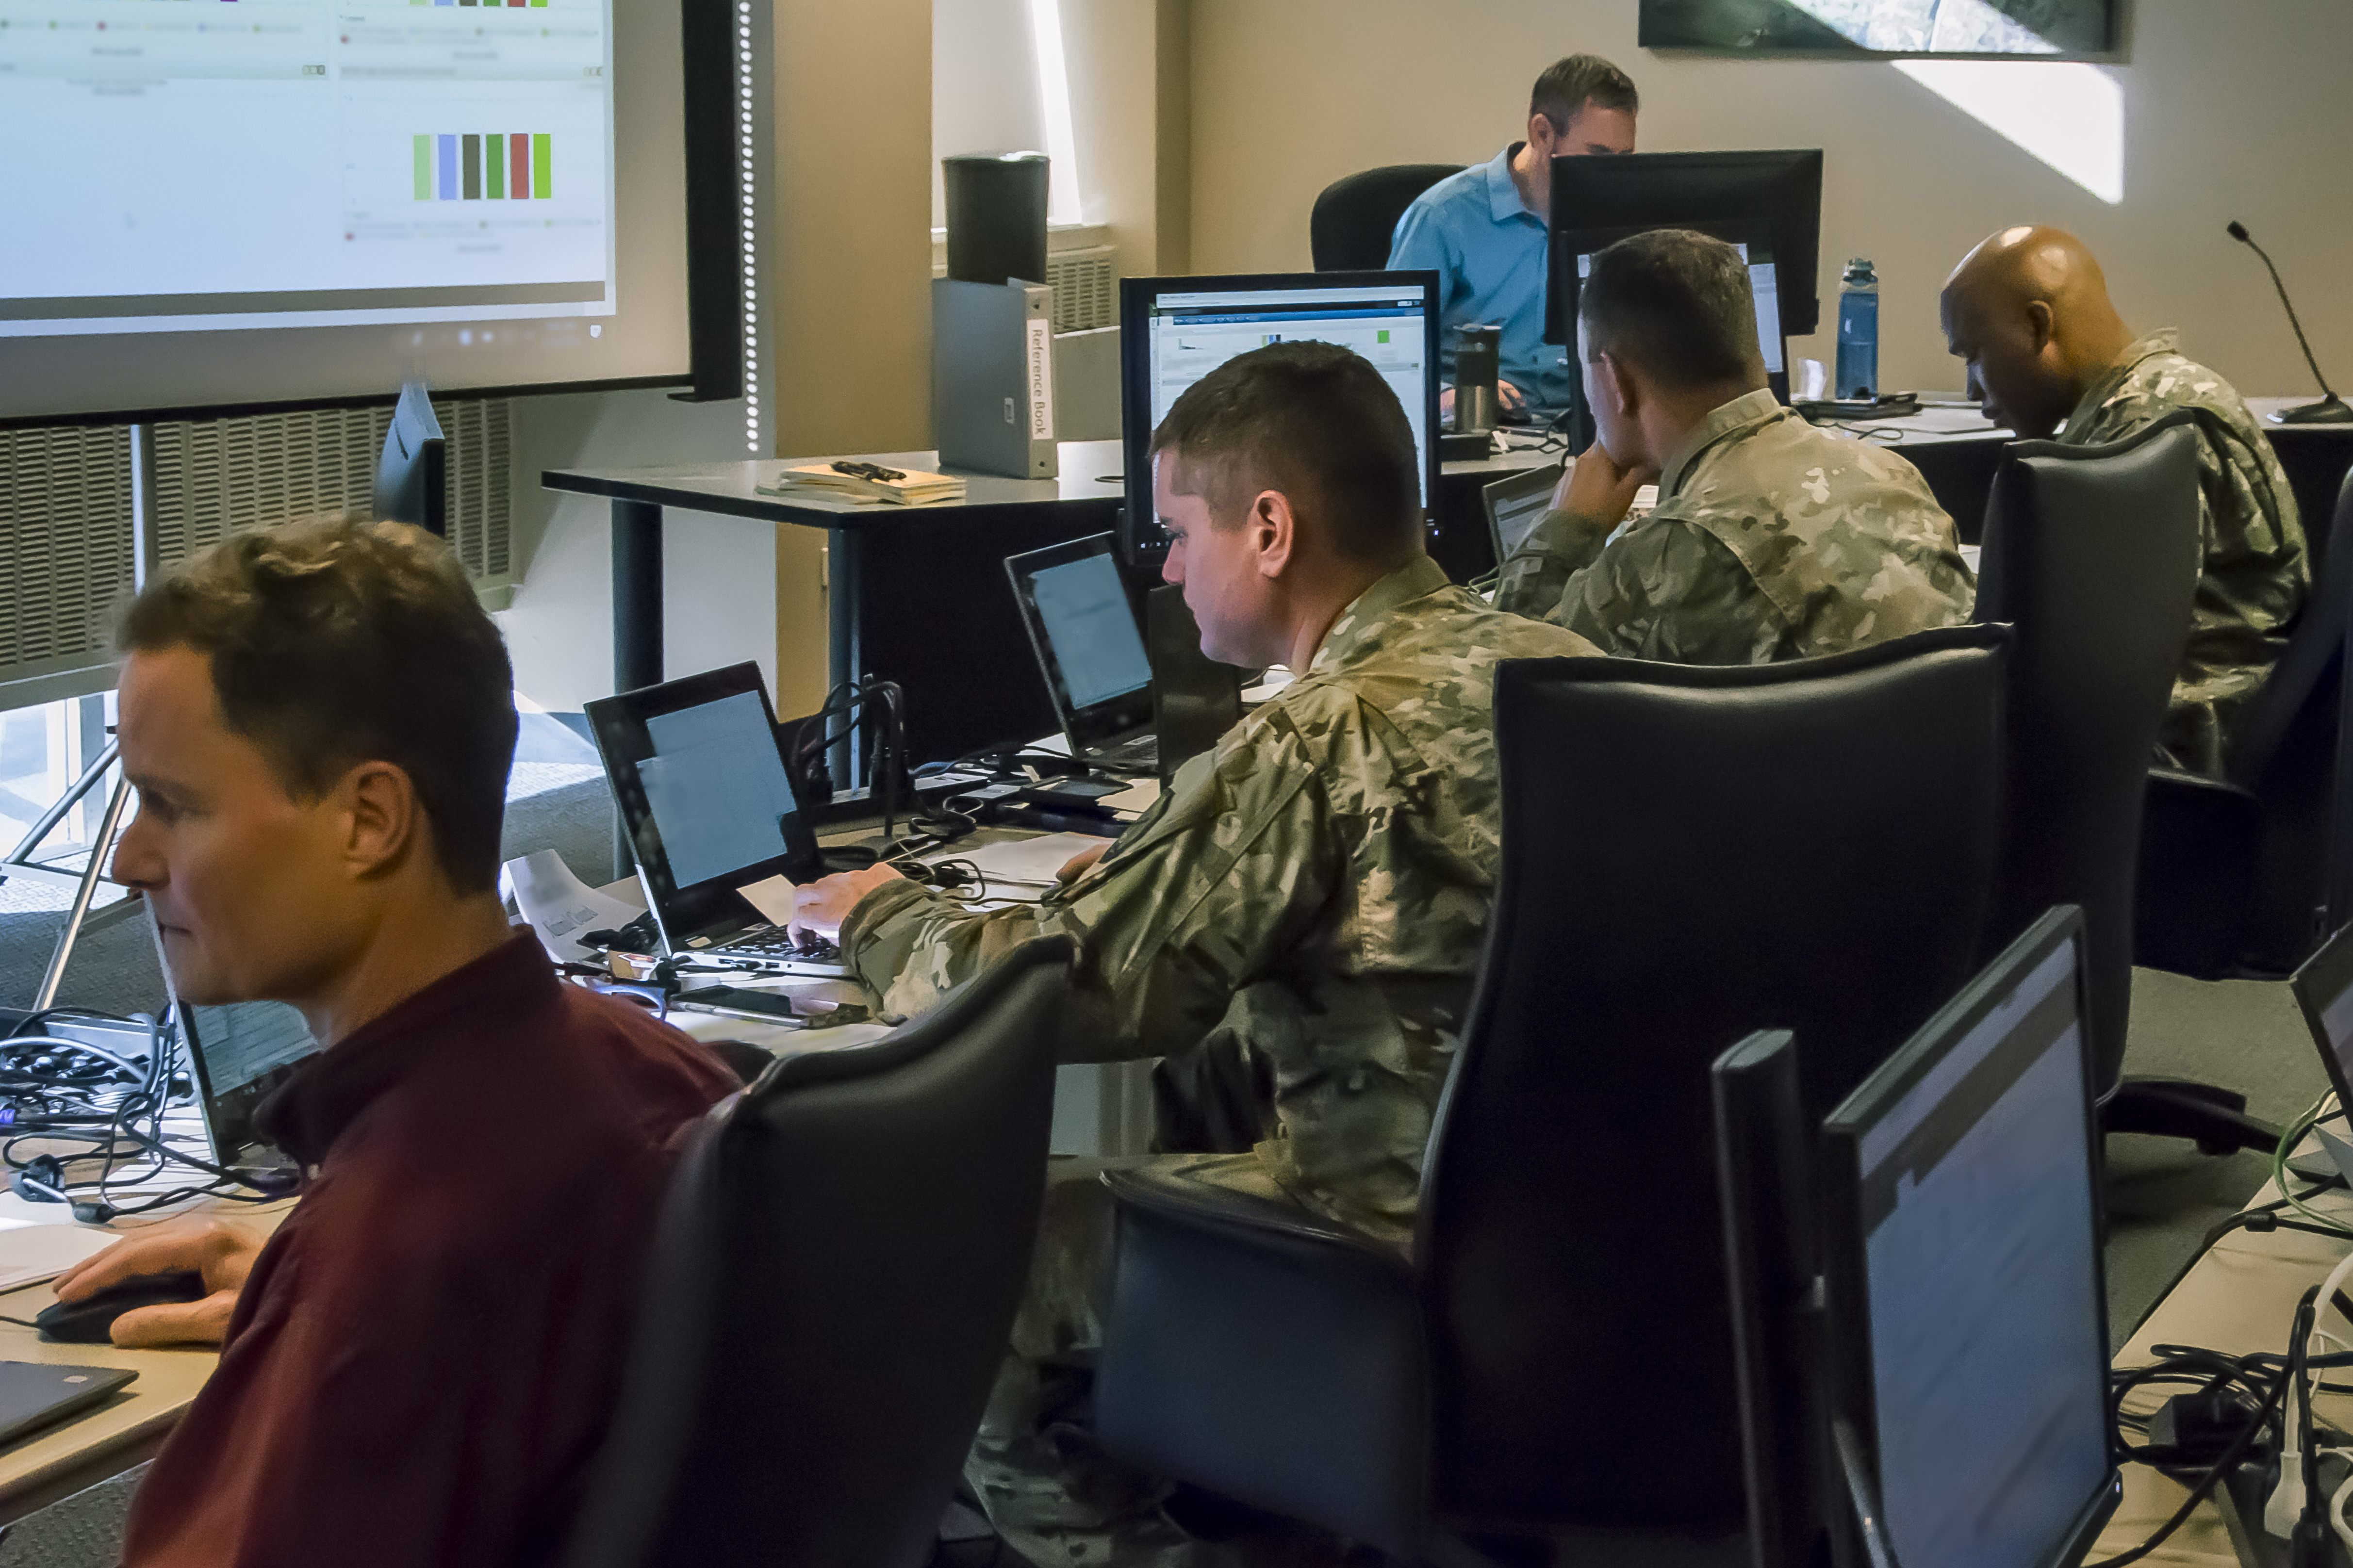 Caption: Members of the Colorado National Guard help monitor network traffic and advise the Secretary of State's office during the Nov. 2018 election. The Guard is once again helping protect elections against cyberattack in 2020., Credit:  Darin Overstreet / Colorado National Guard